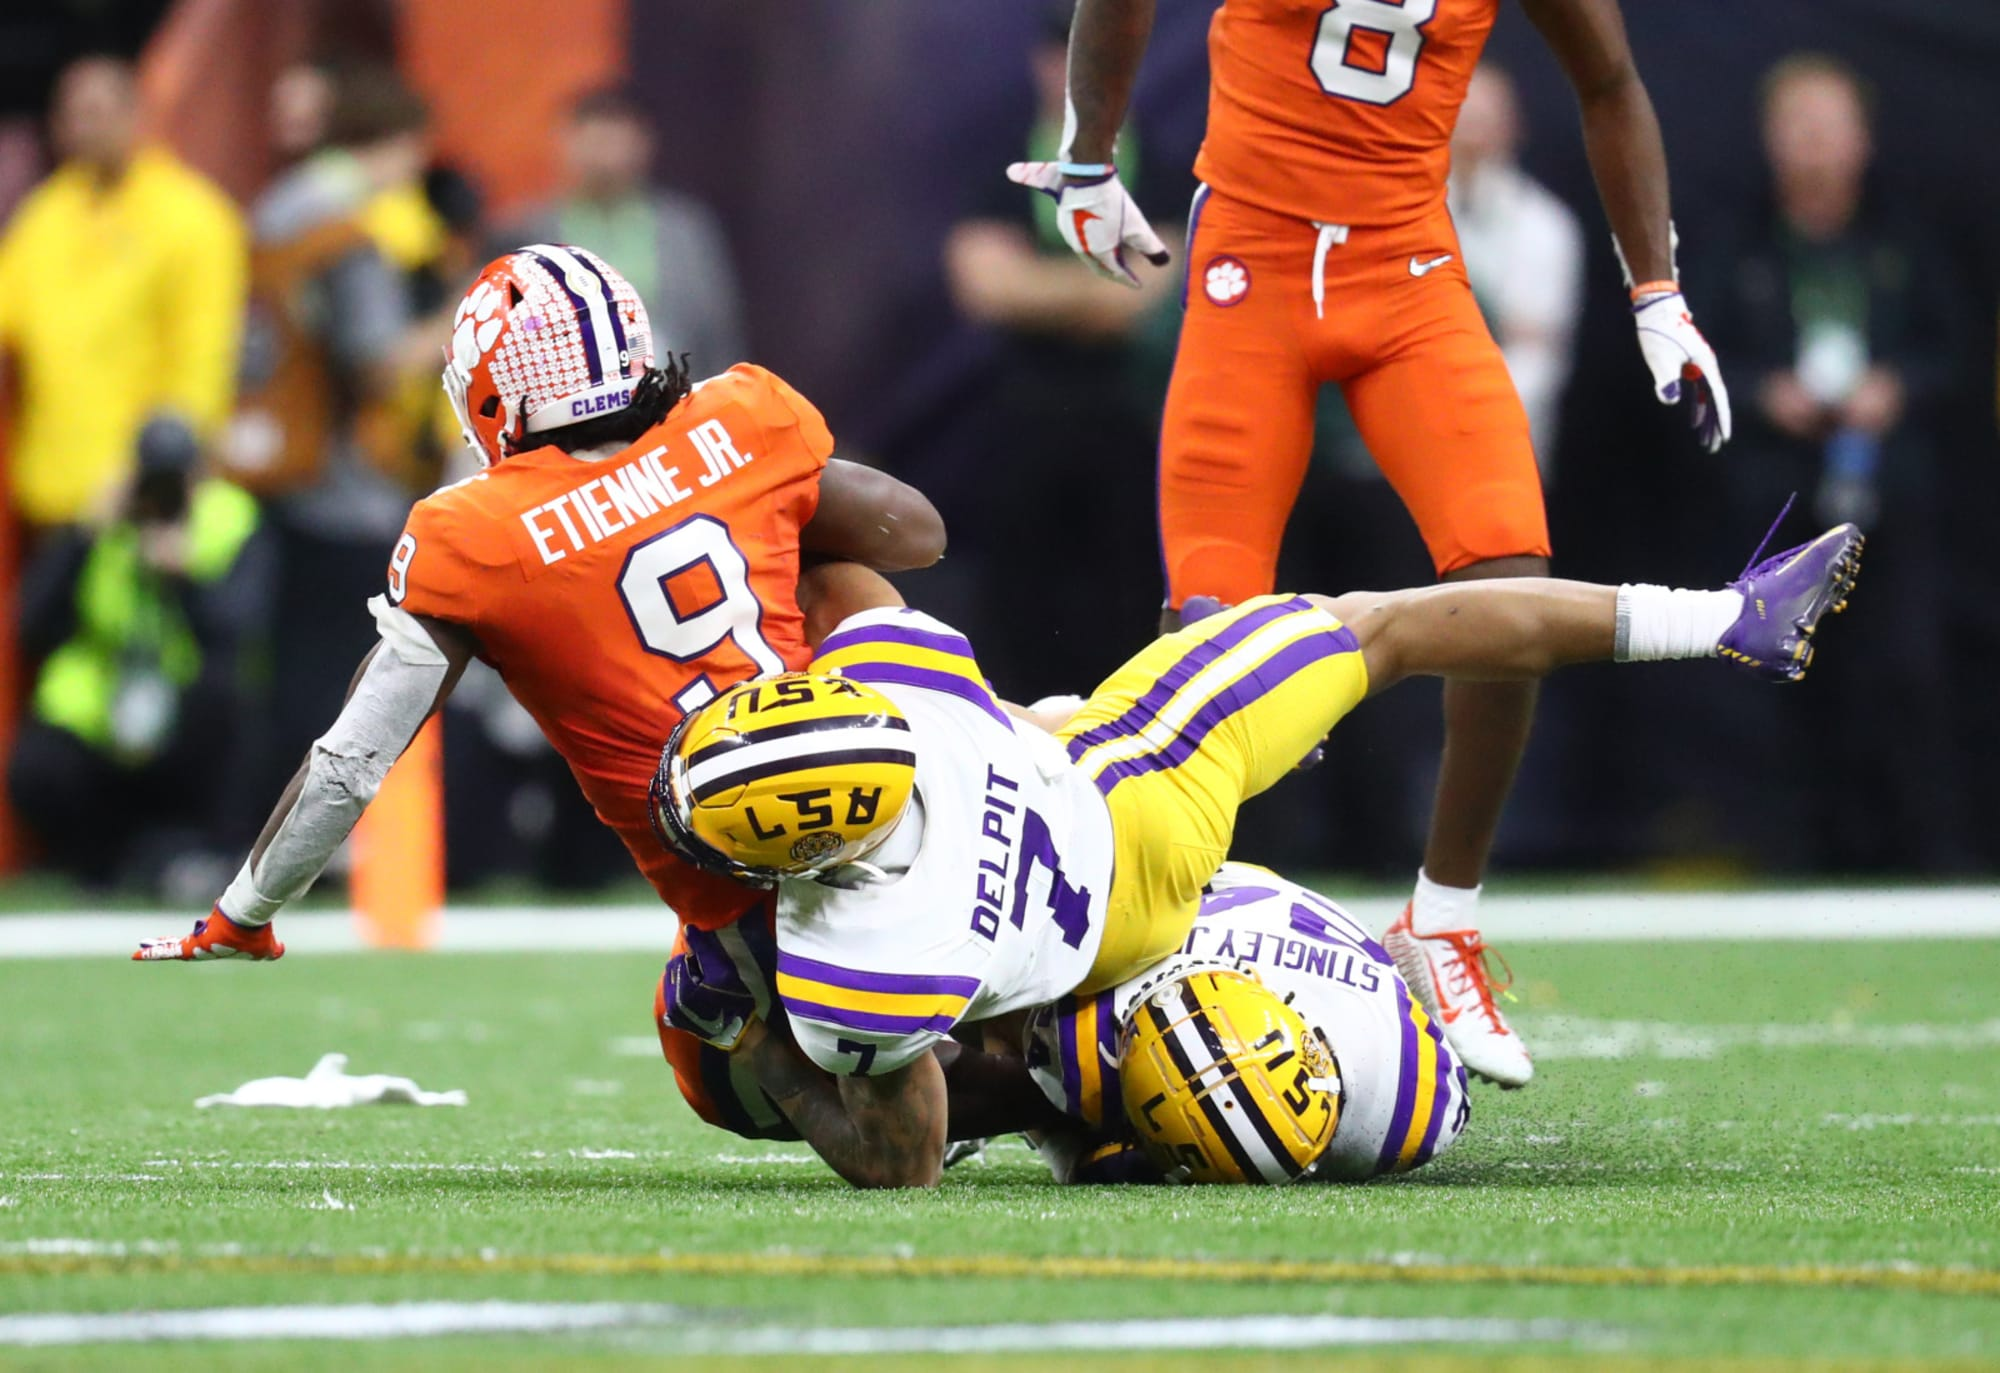 Could LSU football have another Travis Etienne situation brewing?